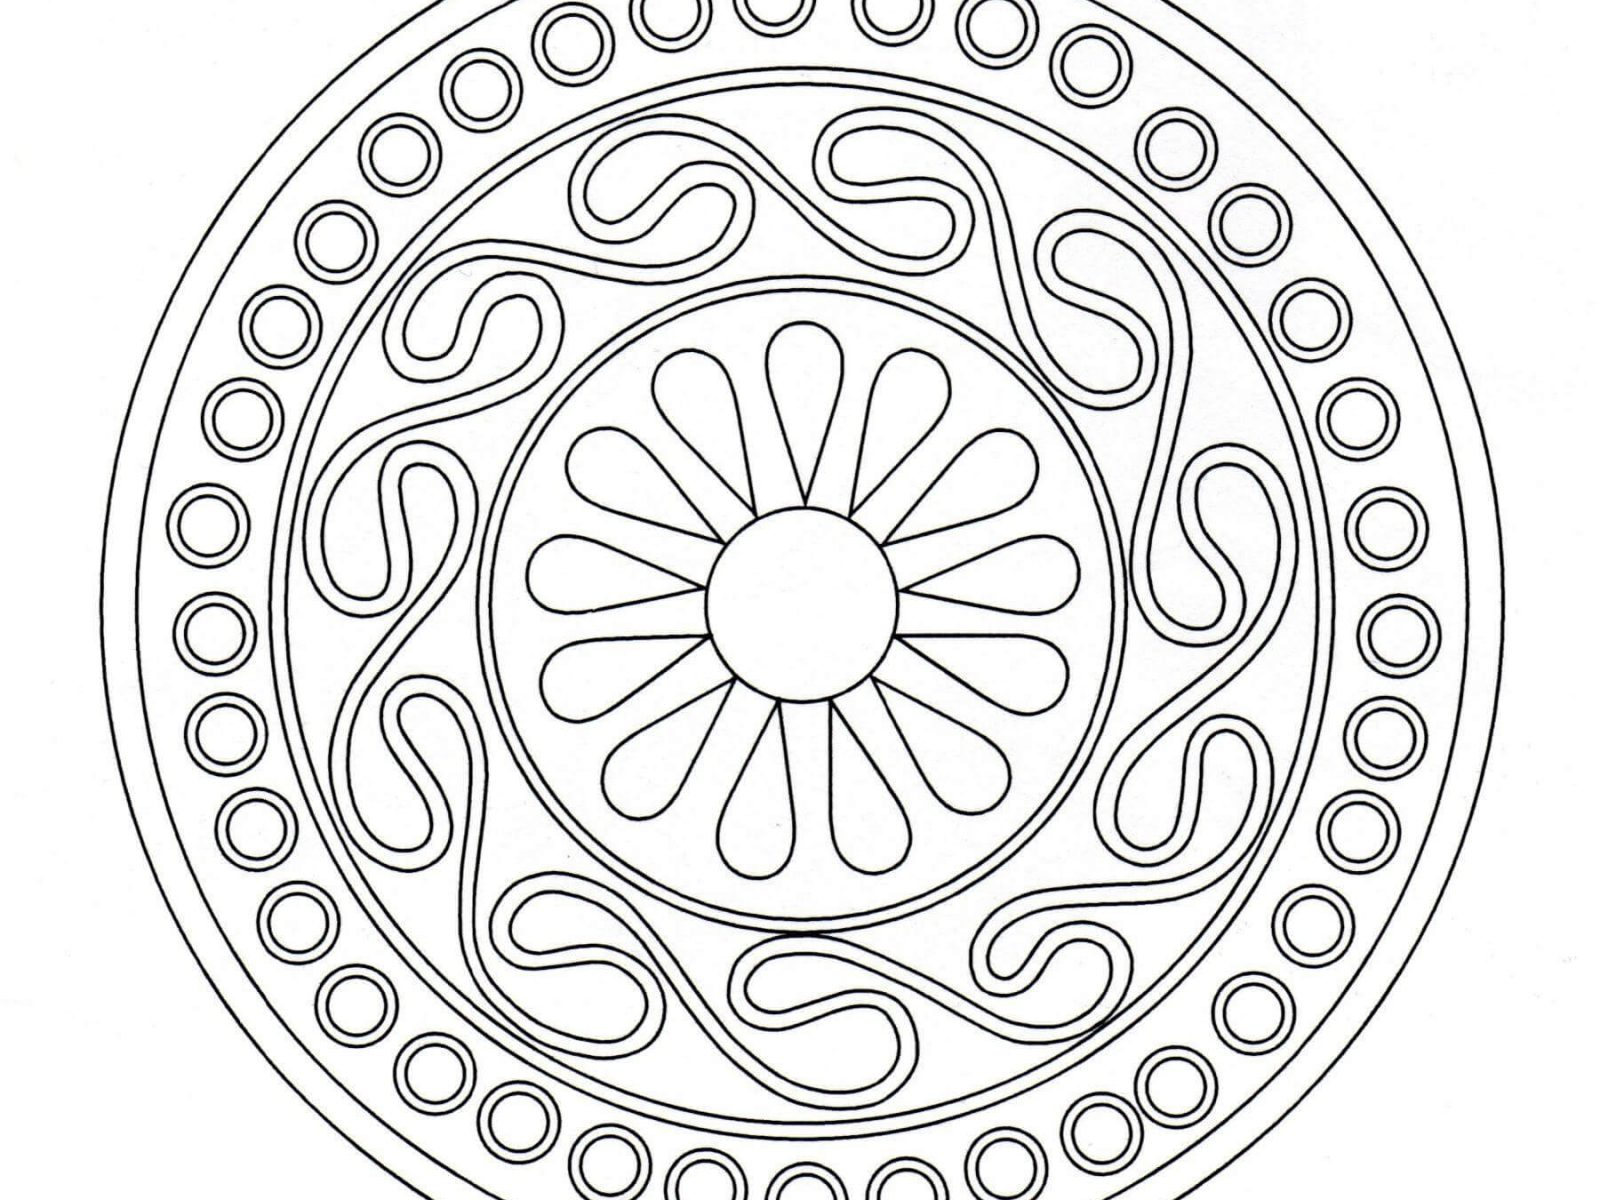 1600x1200 Elianwi Free Celtic Knot Coloring Pages Fine Printable Images Hd